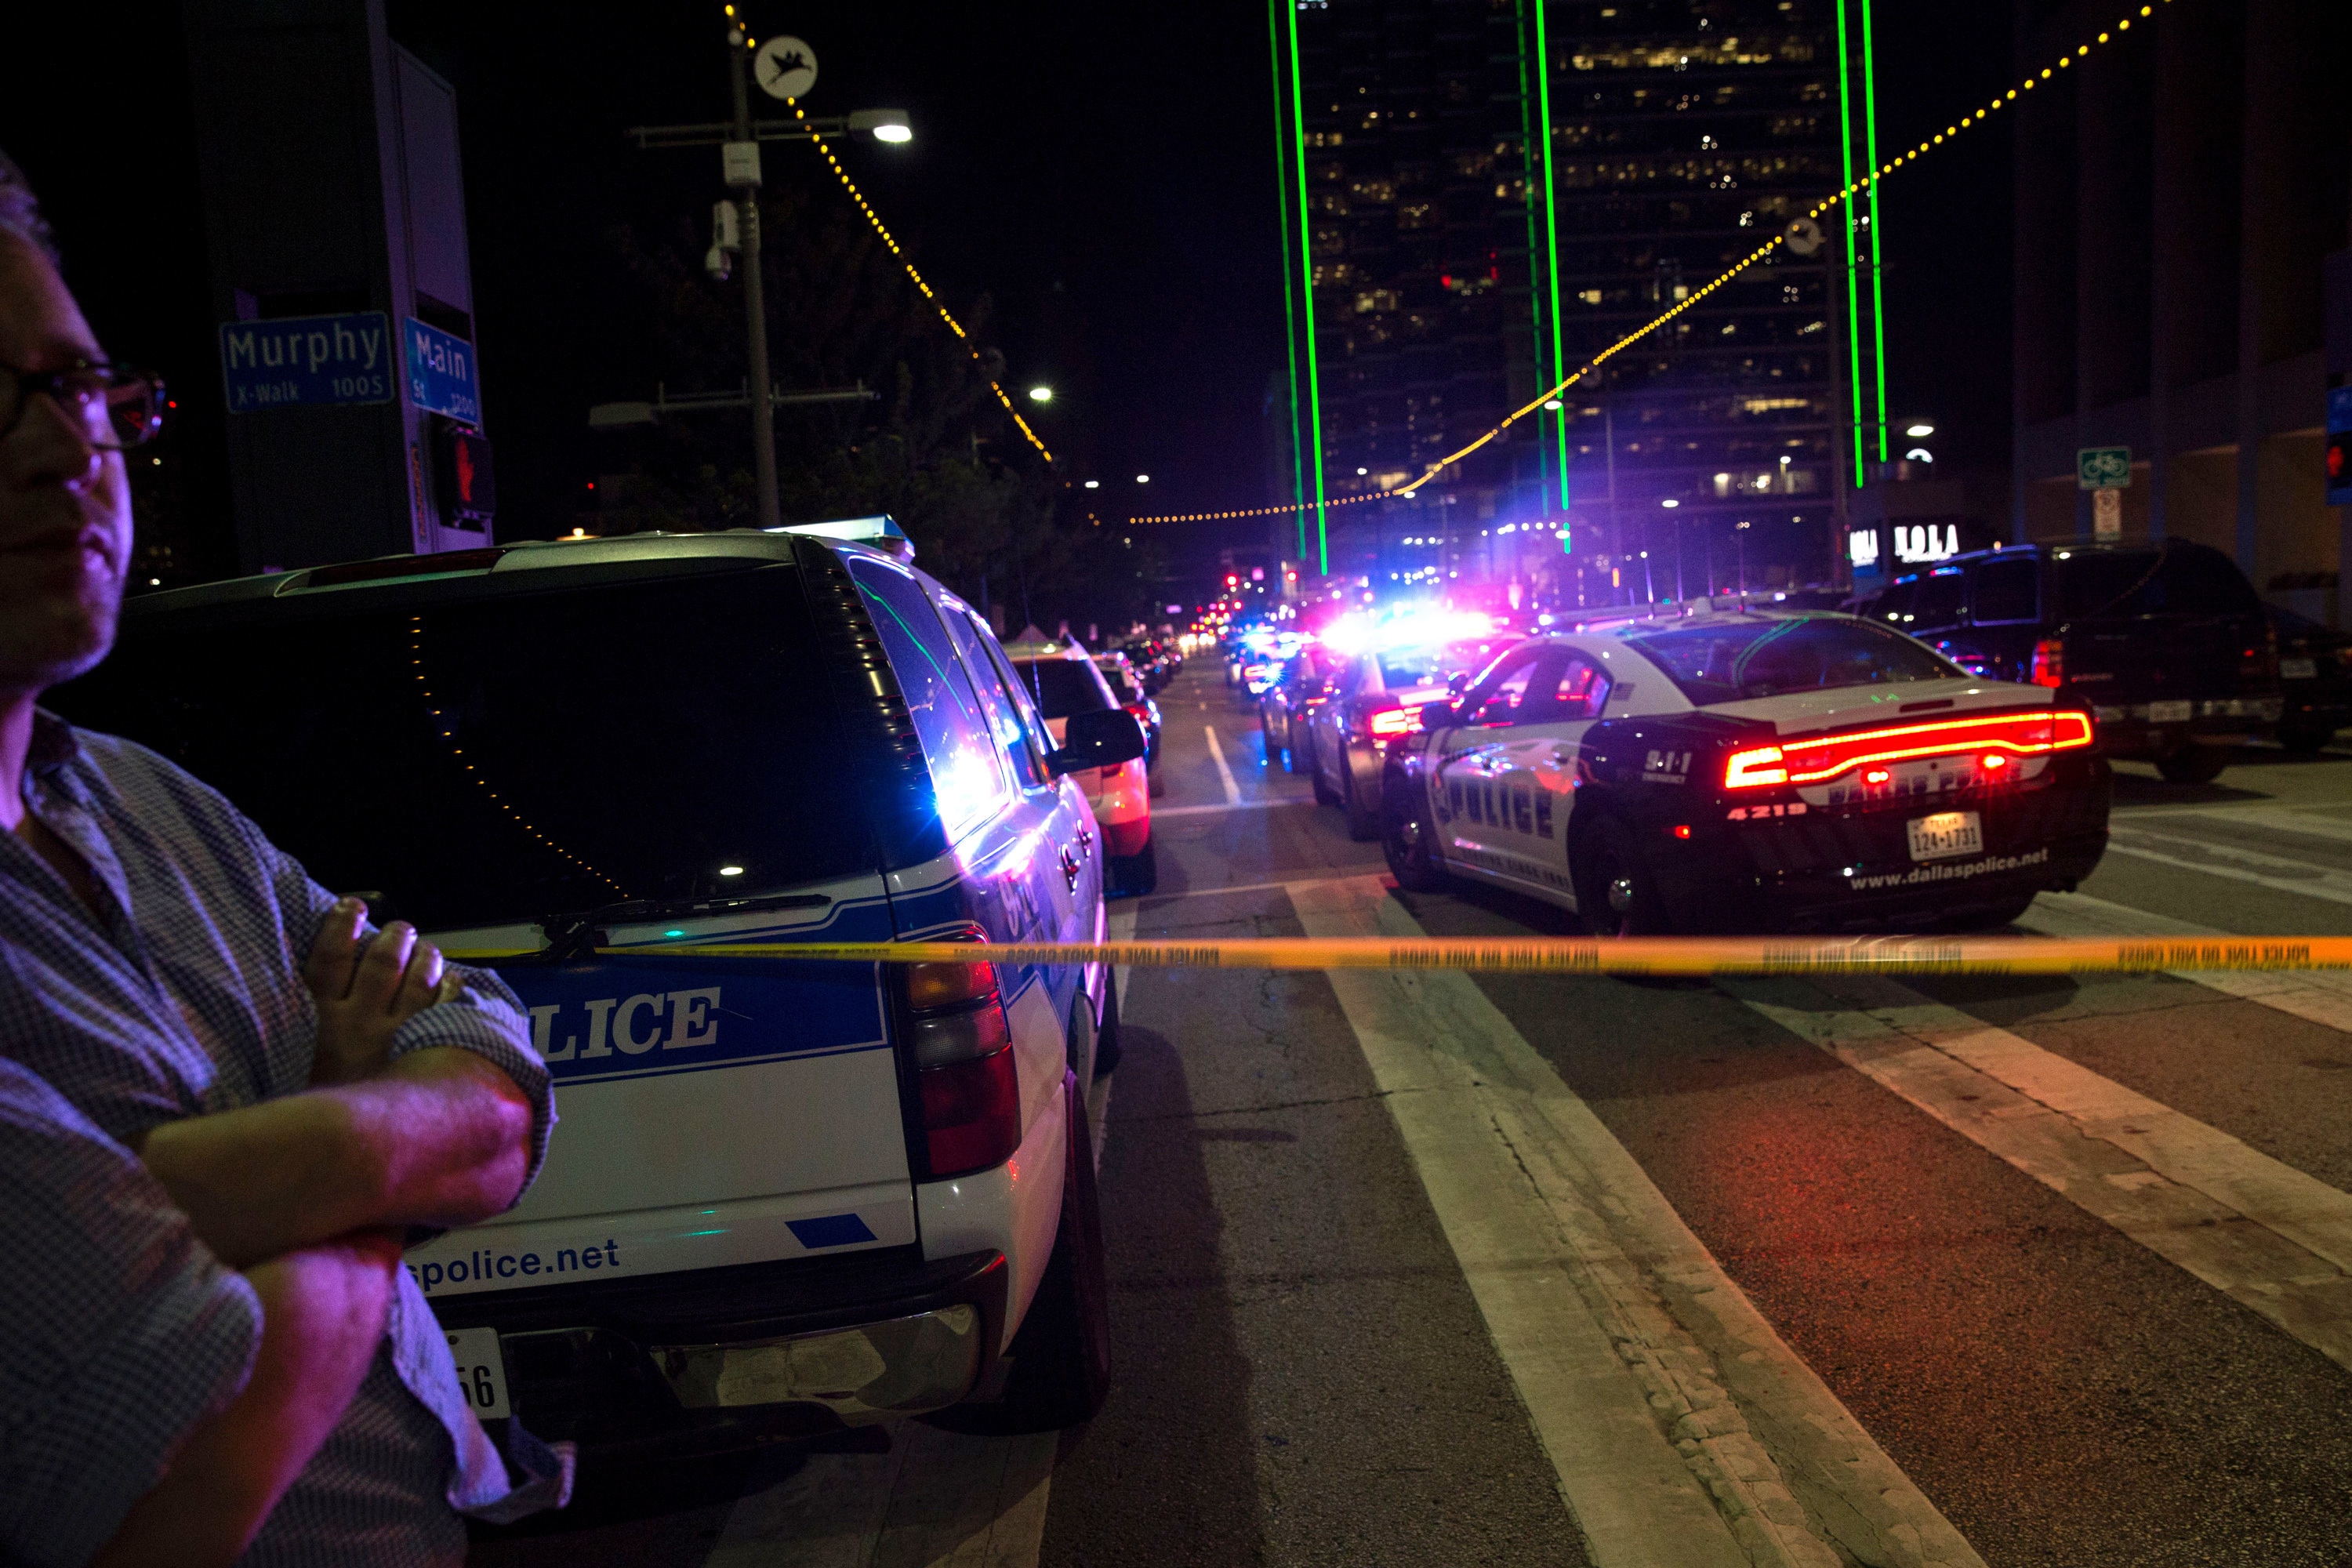 Police cars on Main Street in Dallas following the sniper shooting during a protest on Thursday. (Photo by Laura Buckman/AFP/Getty Images)